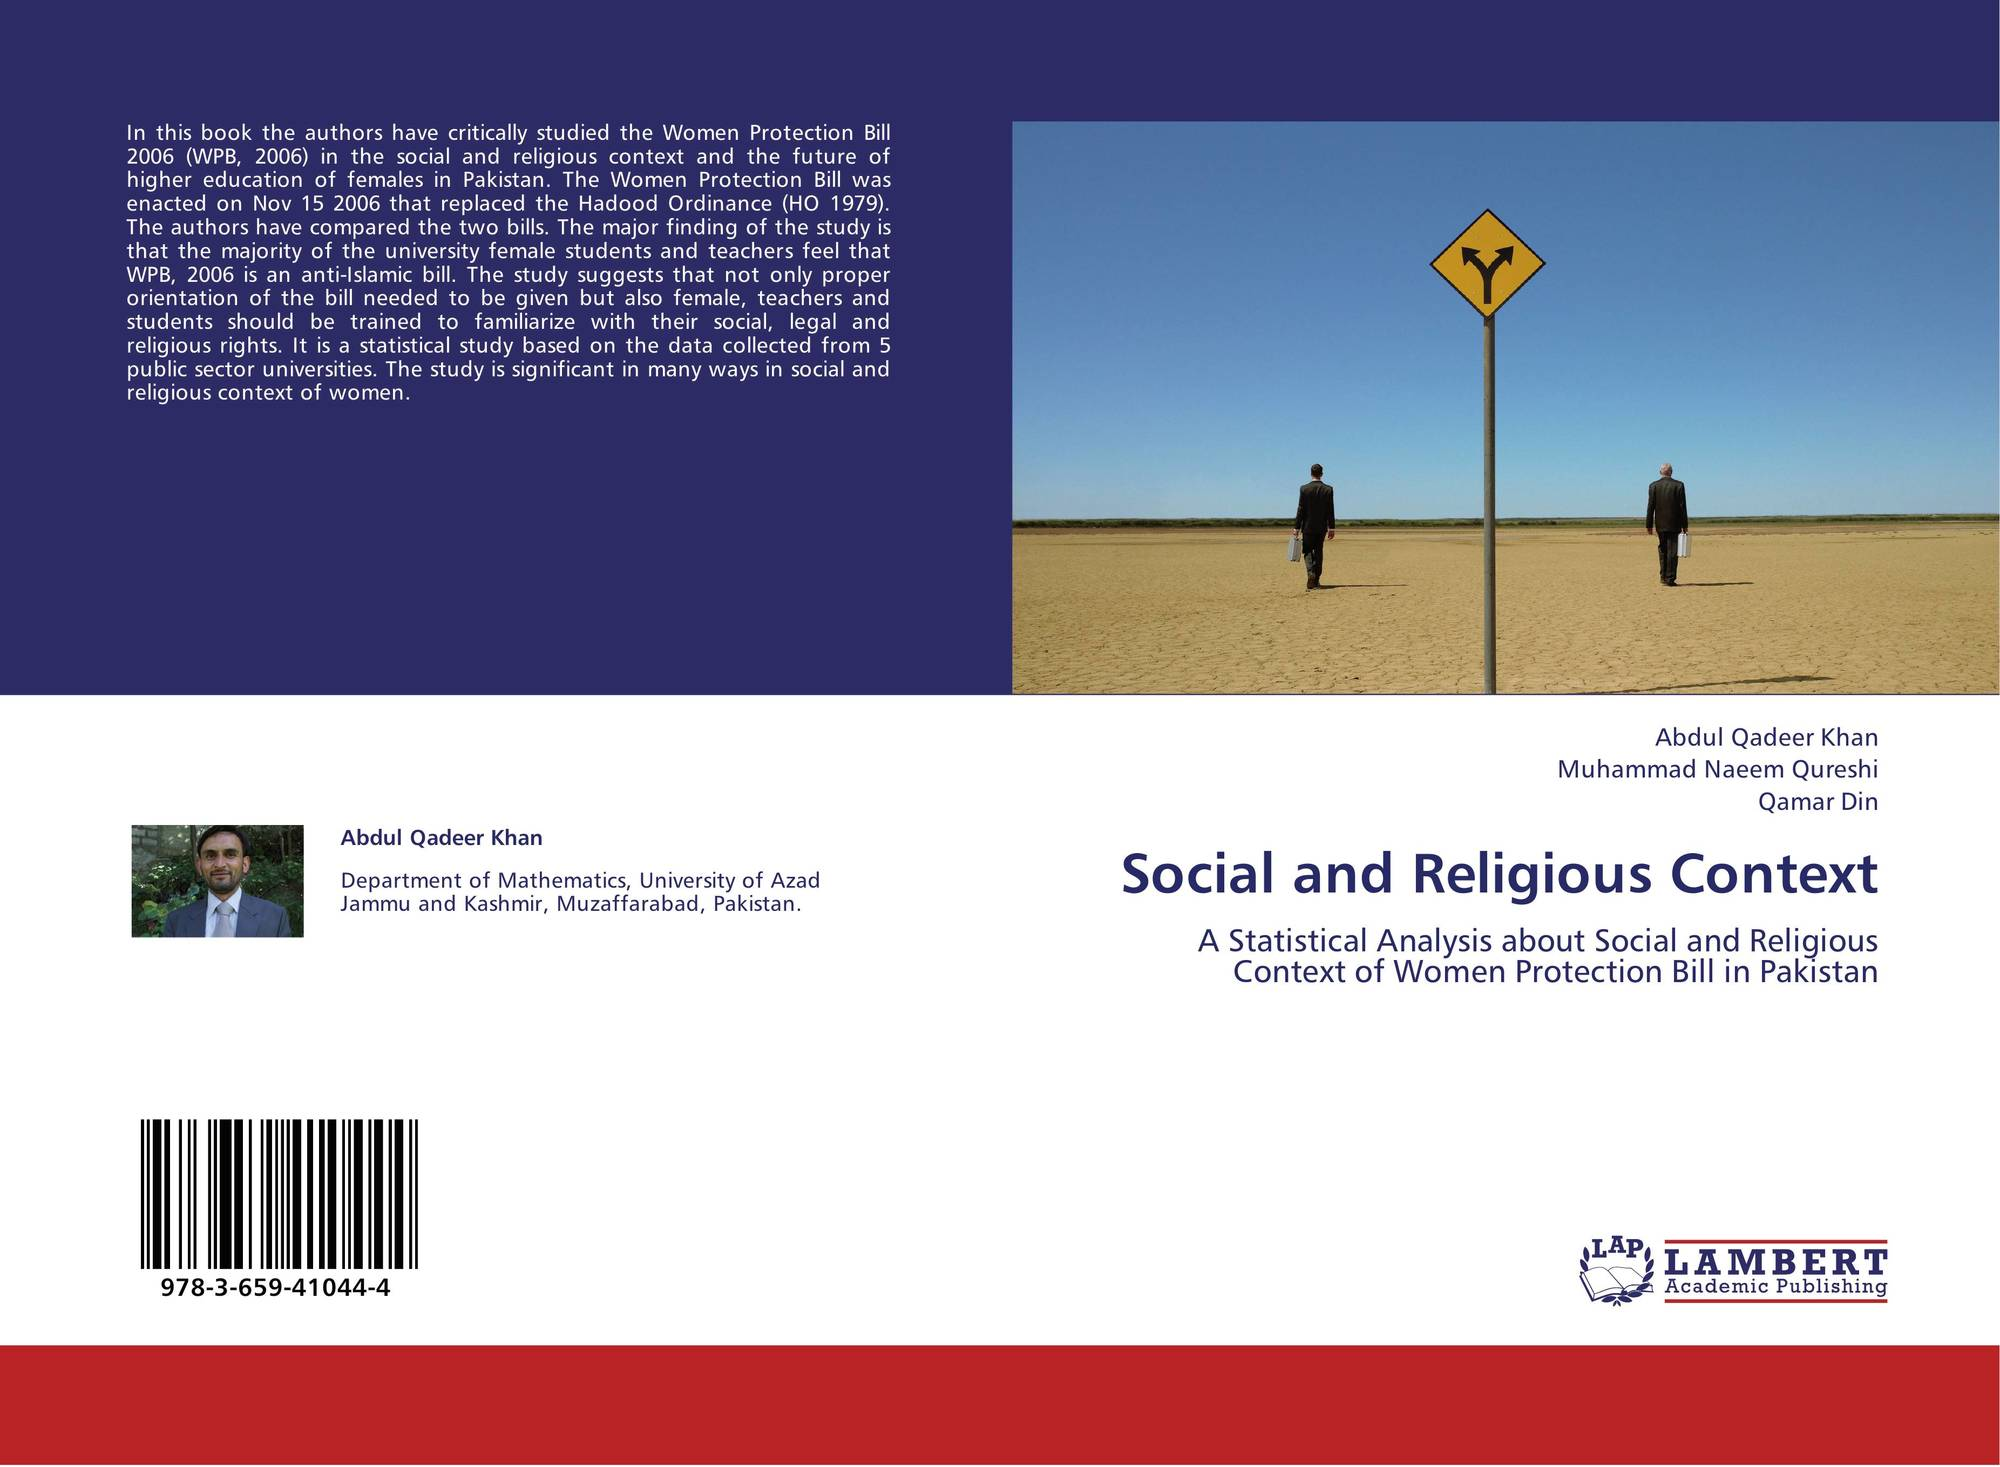 an analysis of education as a social issue in a society A social issue is a problem that influences a considerable number of individuals within a society it is often the consequence of factors extending beyond an individual's control.